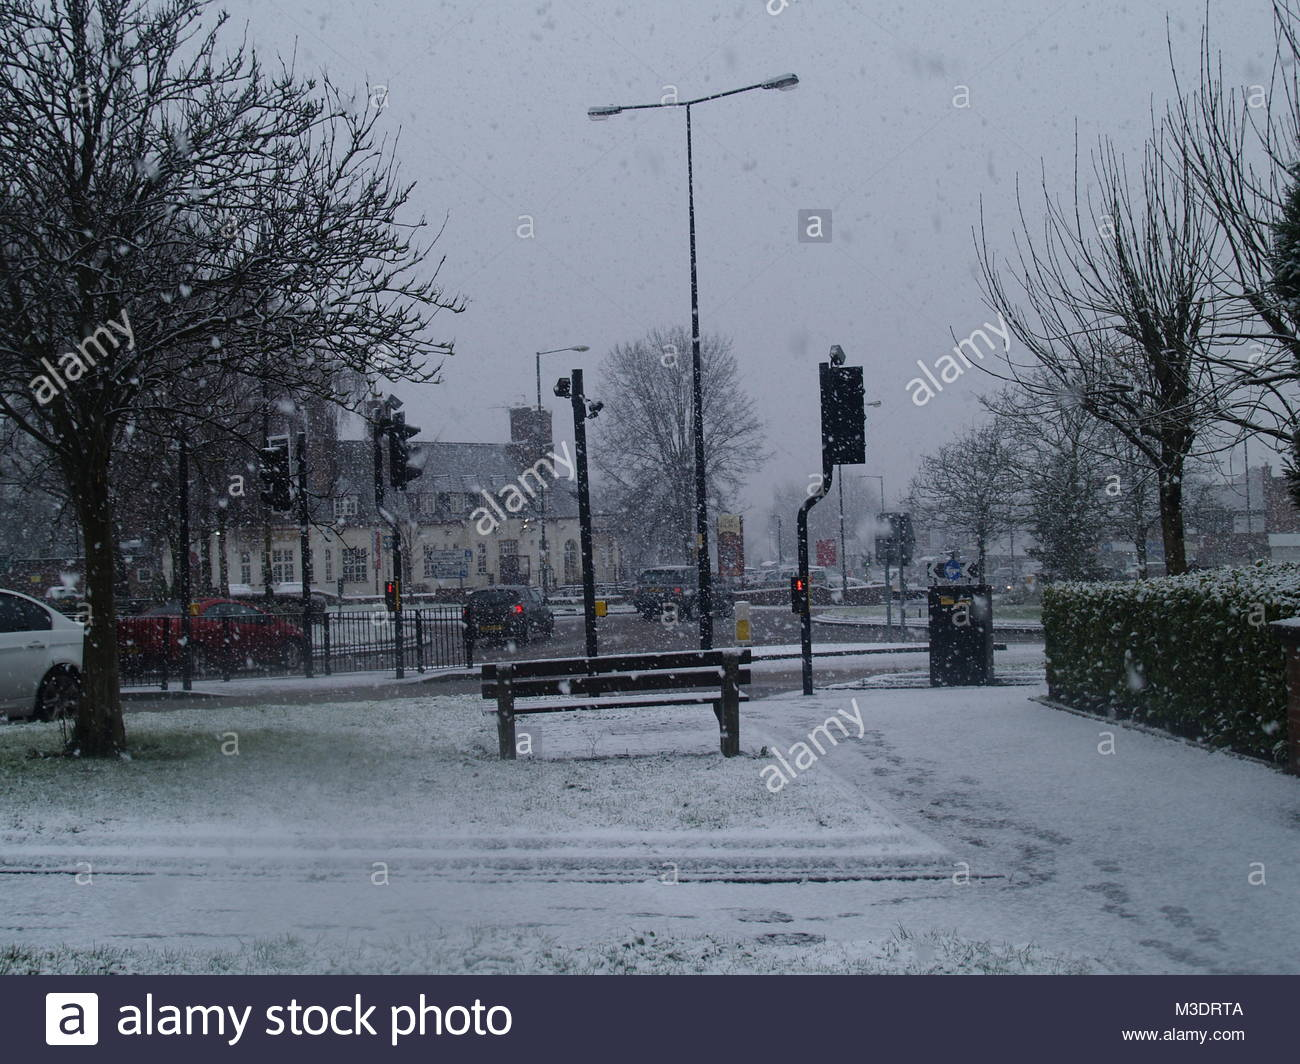 The Traffic Lights Crossing In The Centre Of Aldridge During The Snow Blizzard That Hit The UK - Aldridge, West - Stock Image